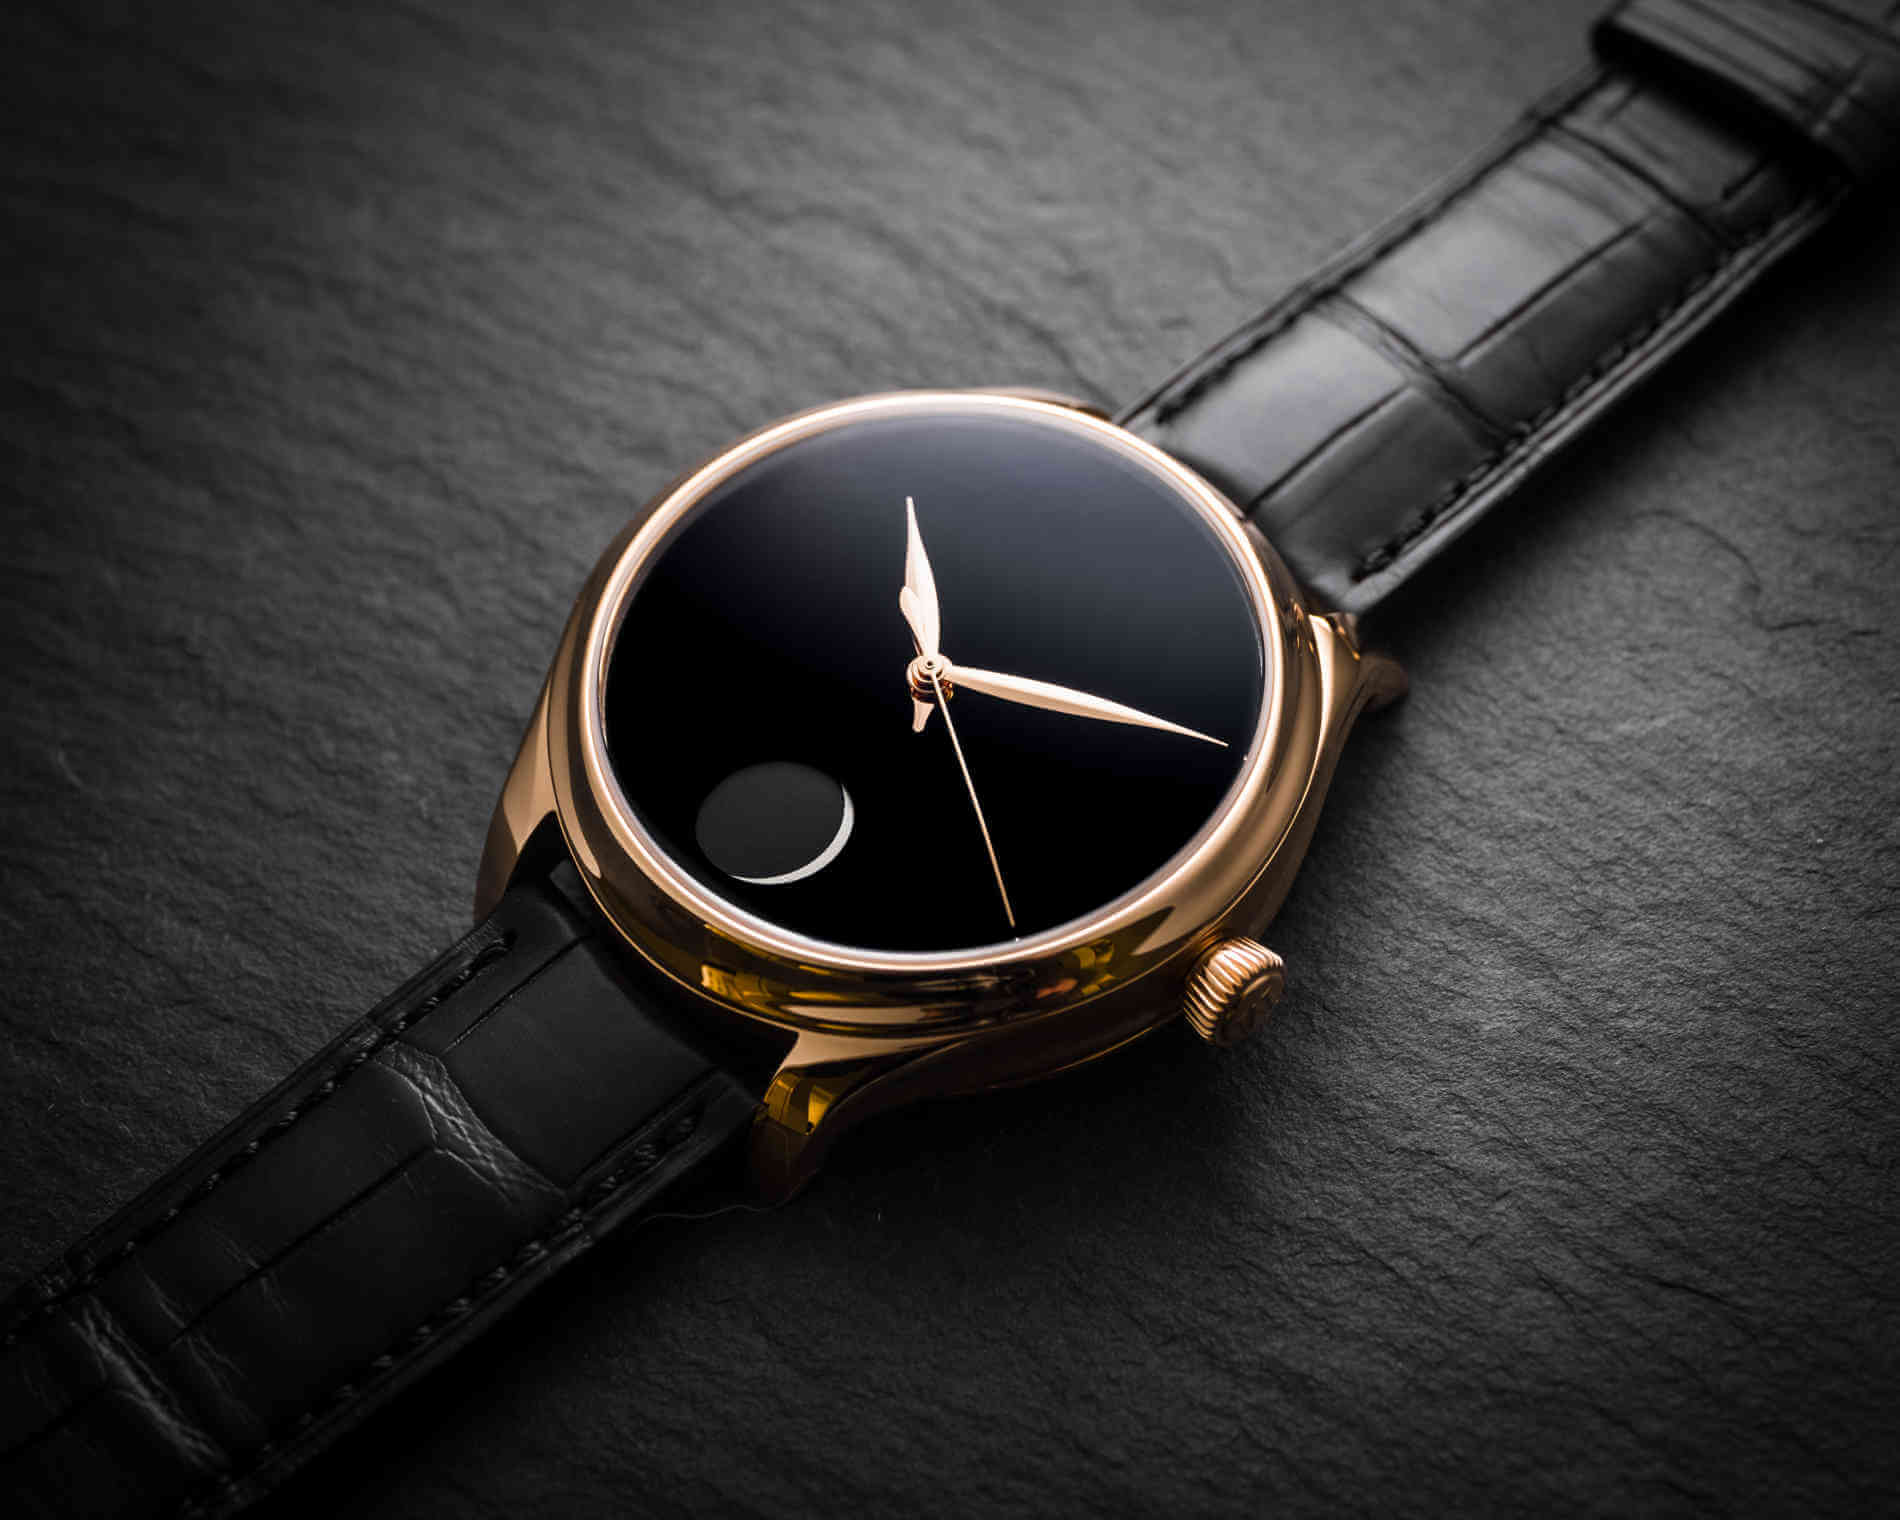 Endeavour Perpetual Moon Concept Only Watch debajo del reloj